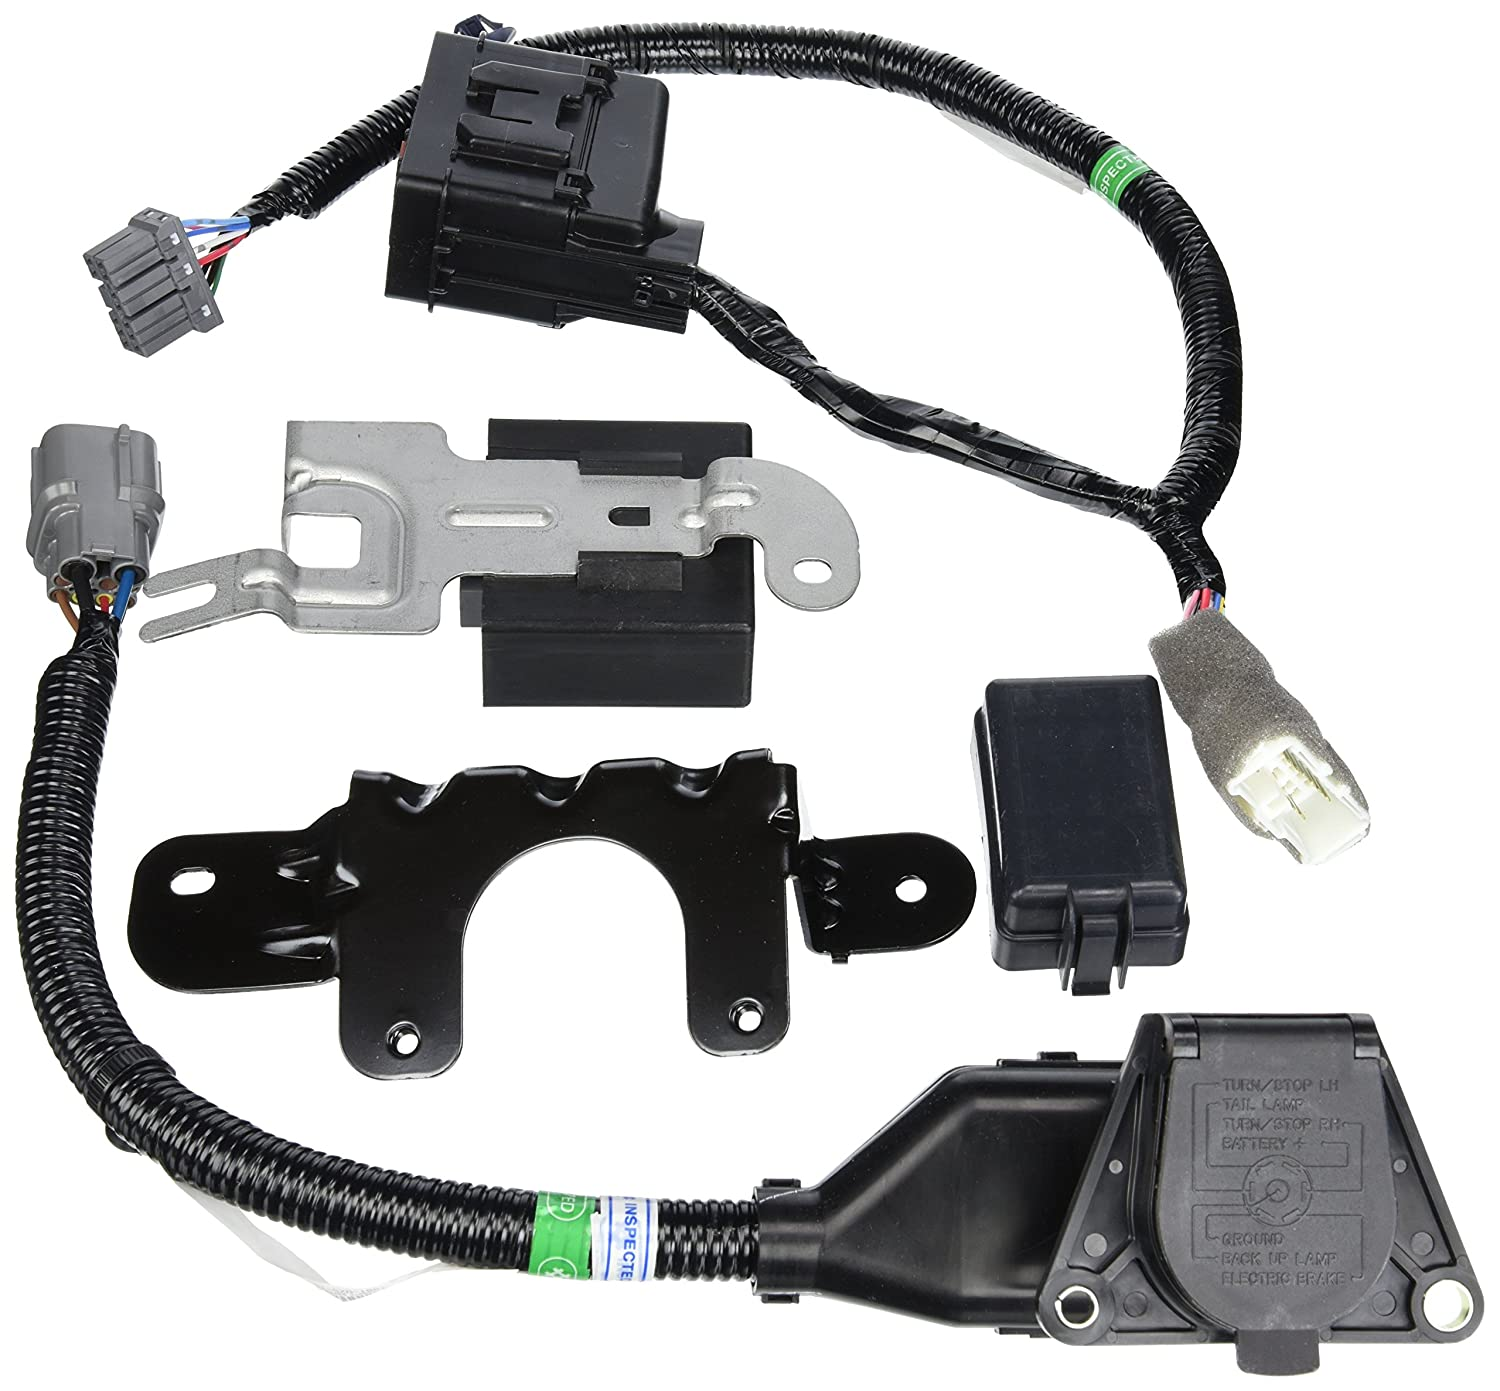 91JV15jVGiL._SL1500_ amazon com genuine honda 08l91 sza 100a trailer hitch harness honda ridgeline trailer wiring harness instructions at bayanpartner.co